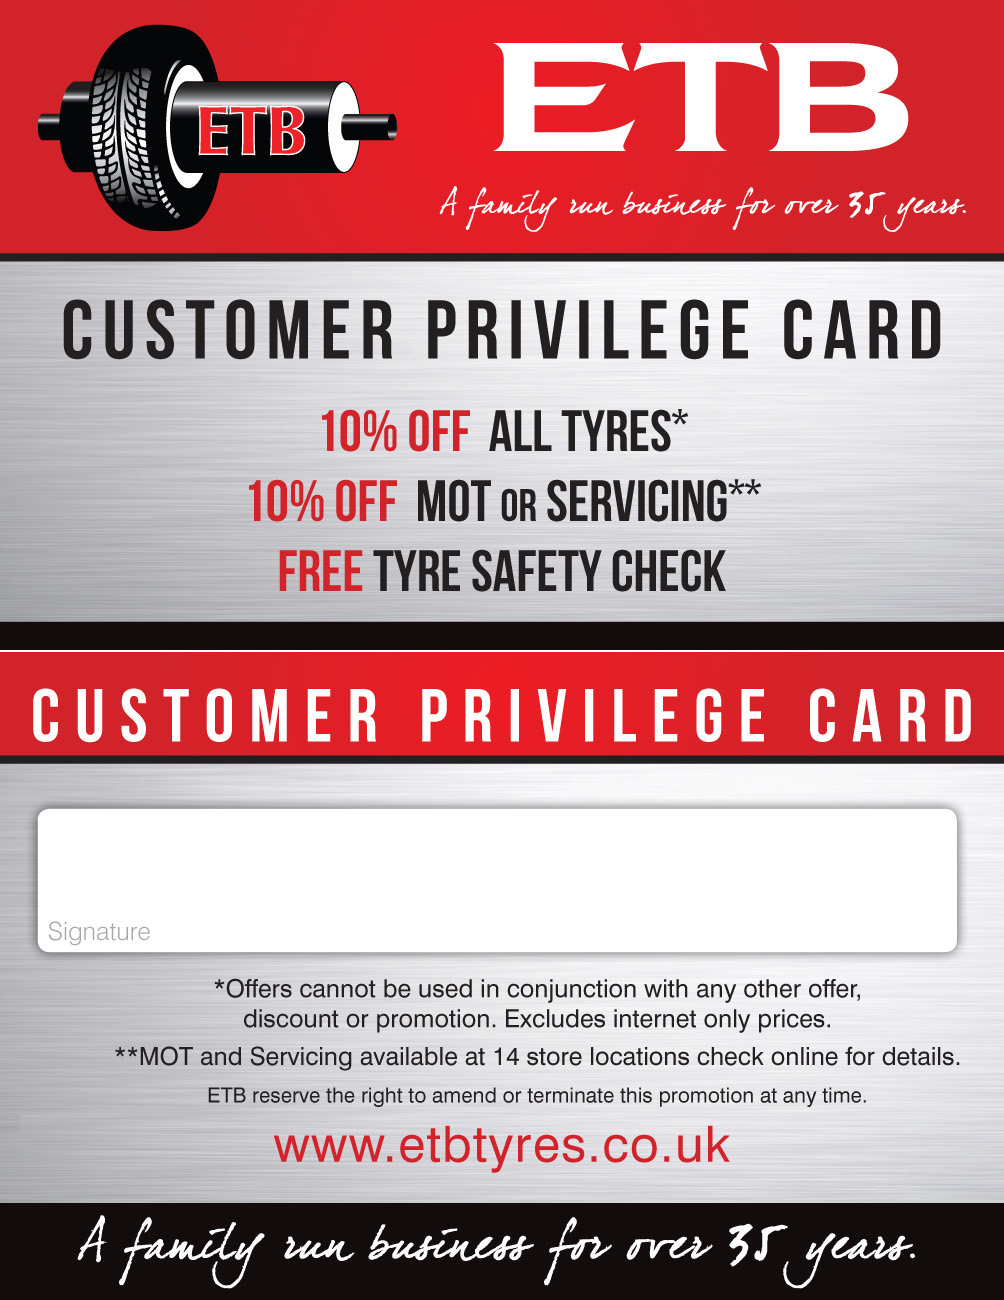 ETB Tyres Privilege Cards